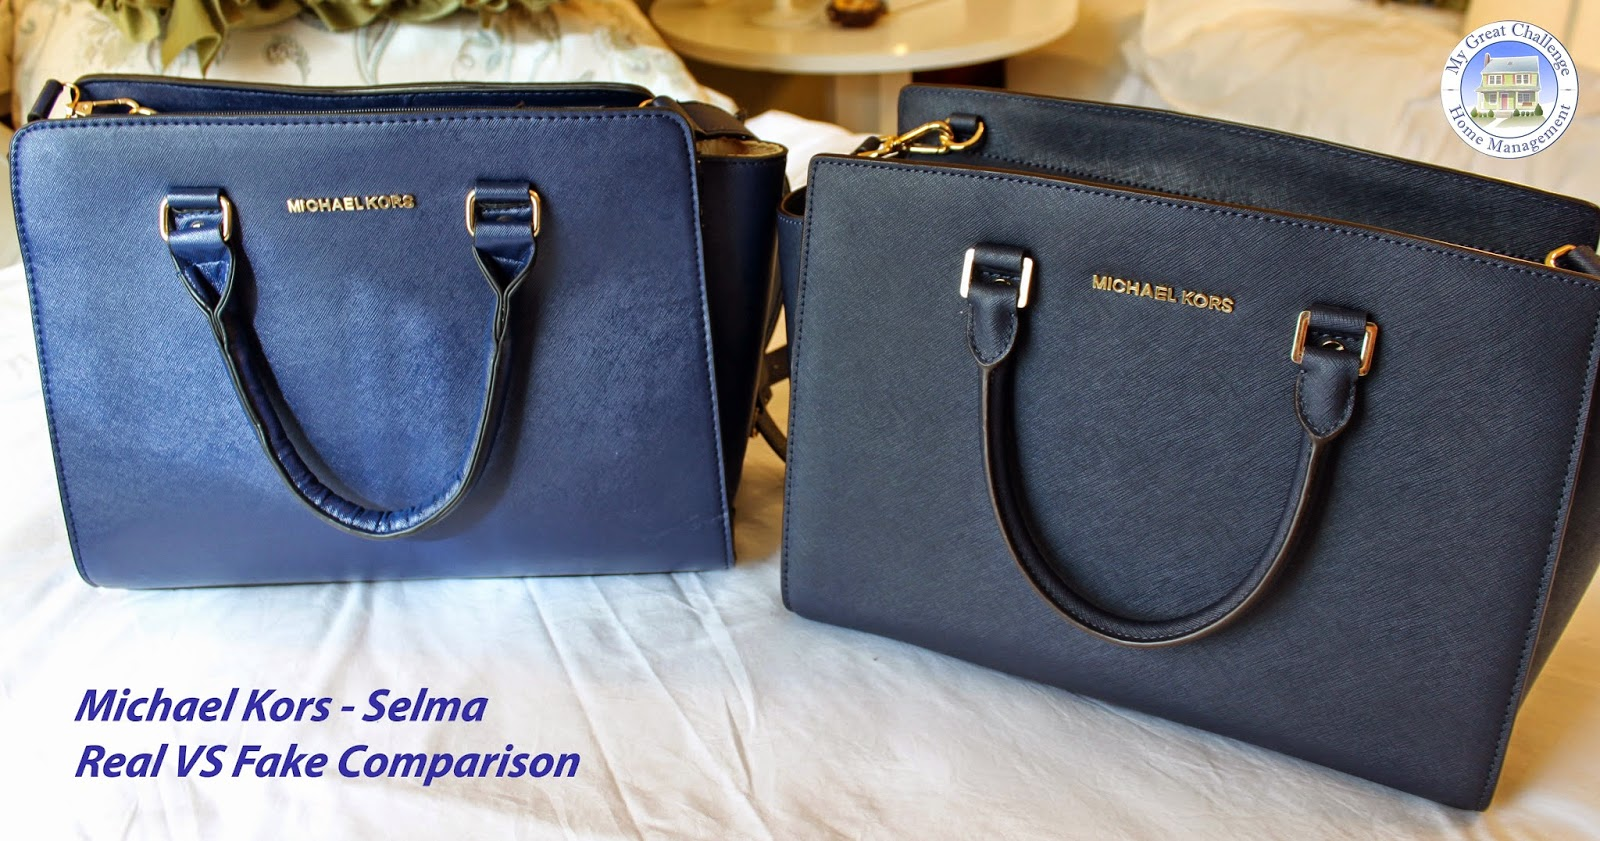 Imitation Michael Kors Sac A Main 3jALqcR54S